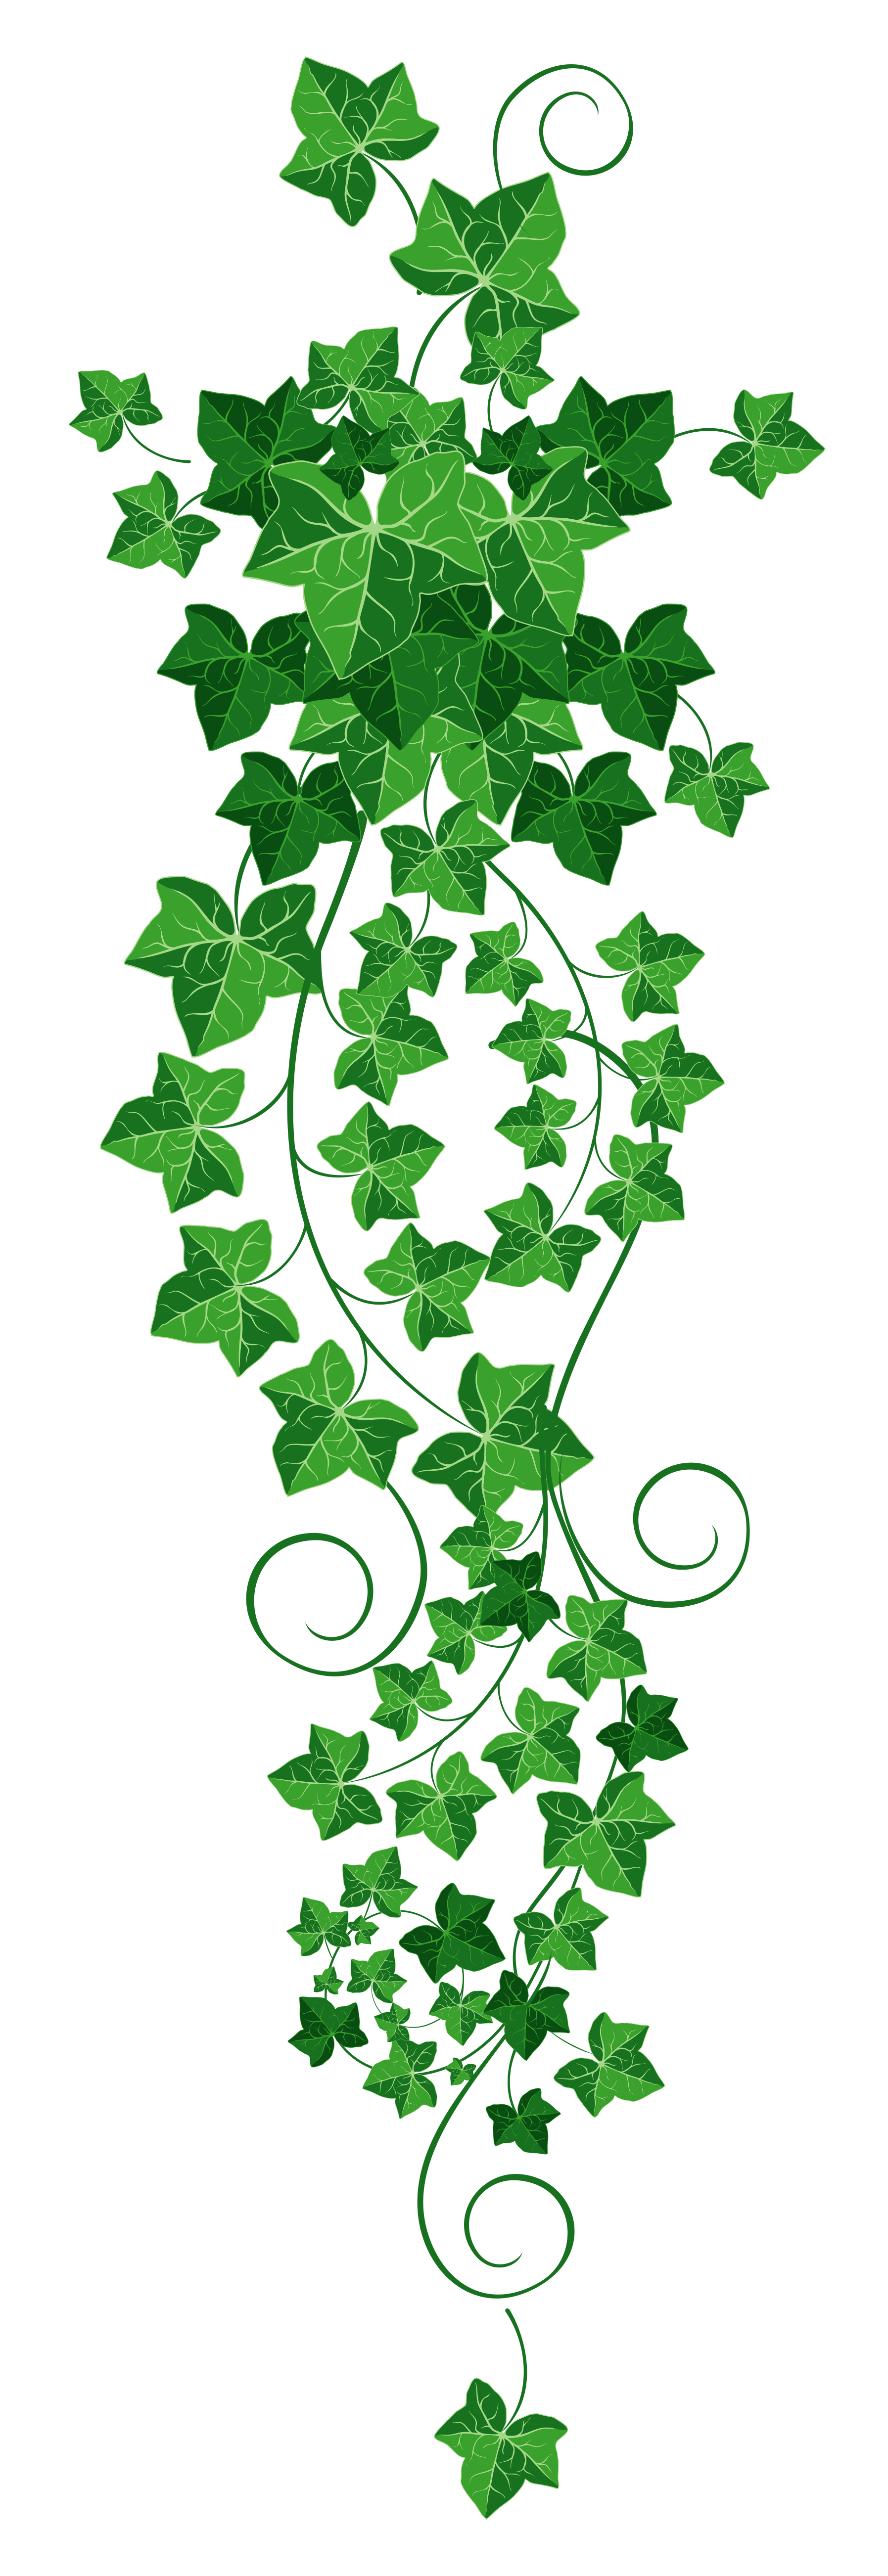 1026 Ivy free clipart.